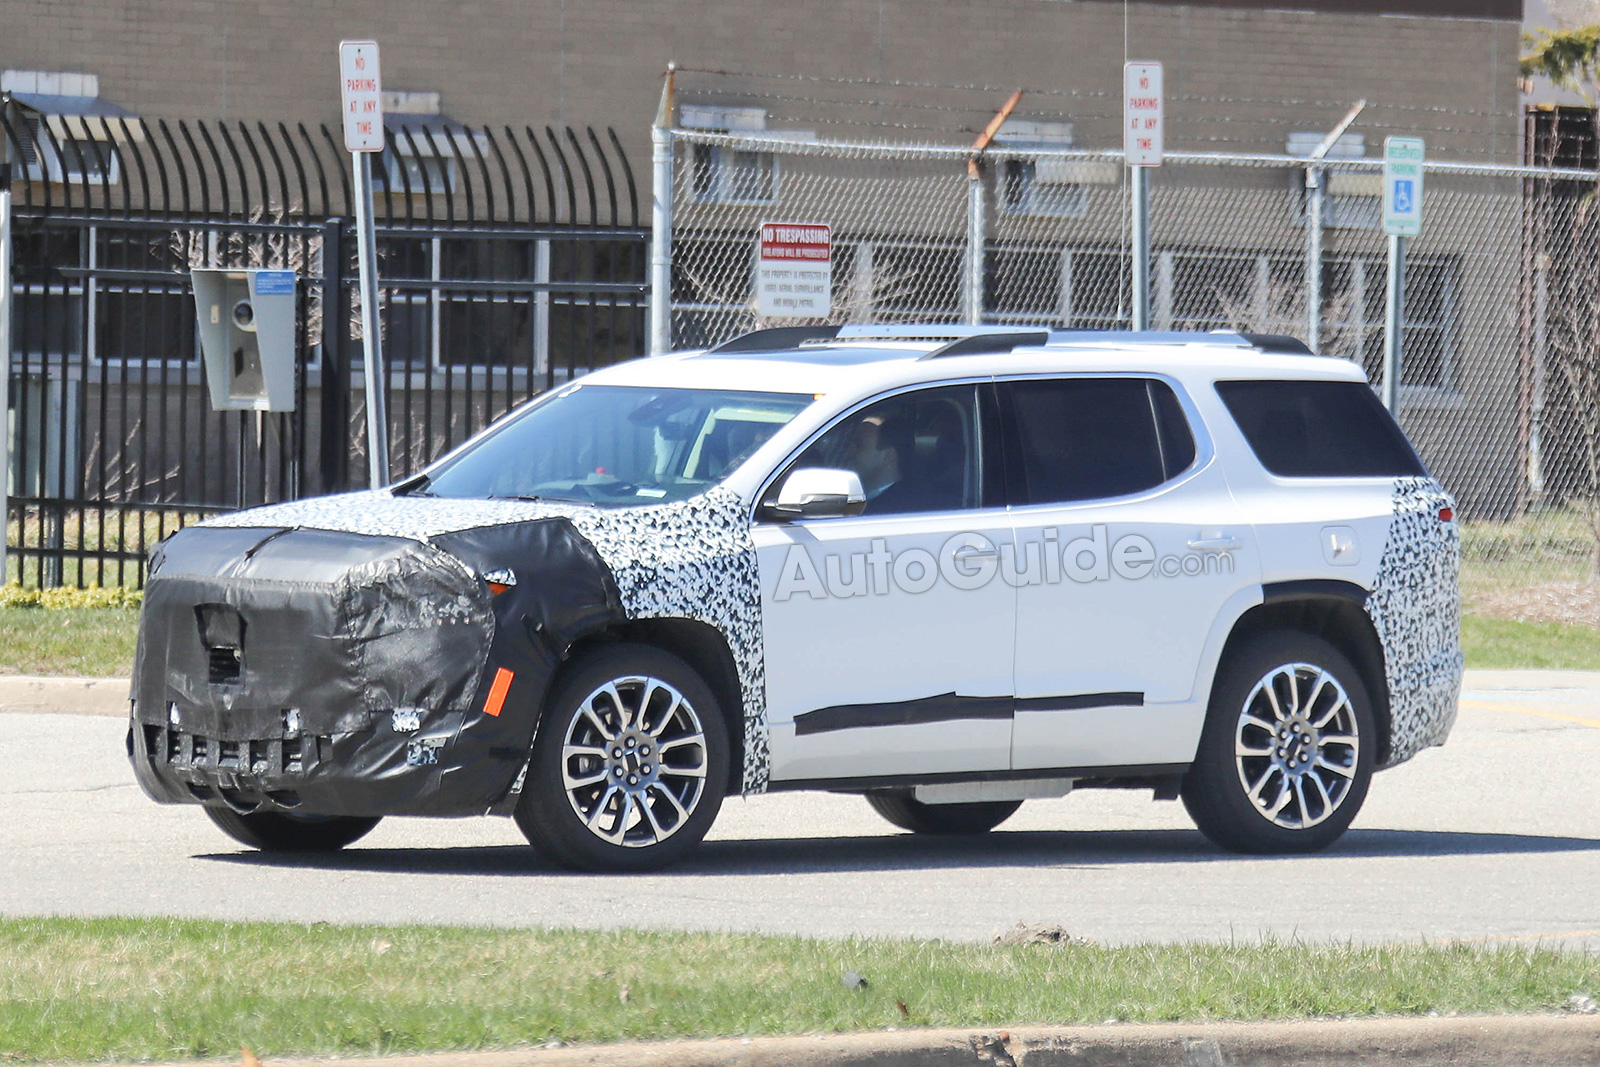 2020 GMC Acadia Spied Testing its Mid-Cycle Refresh ...